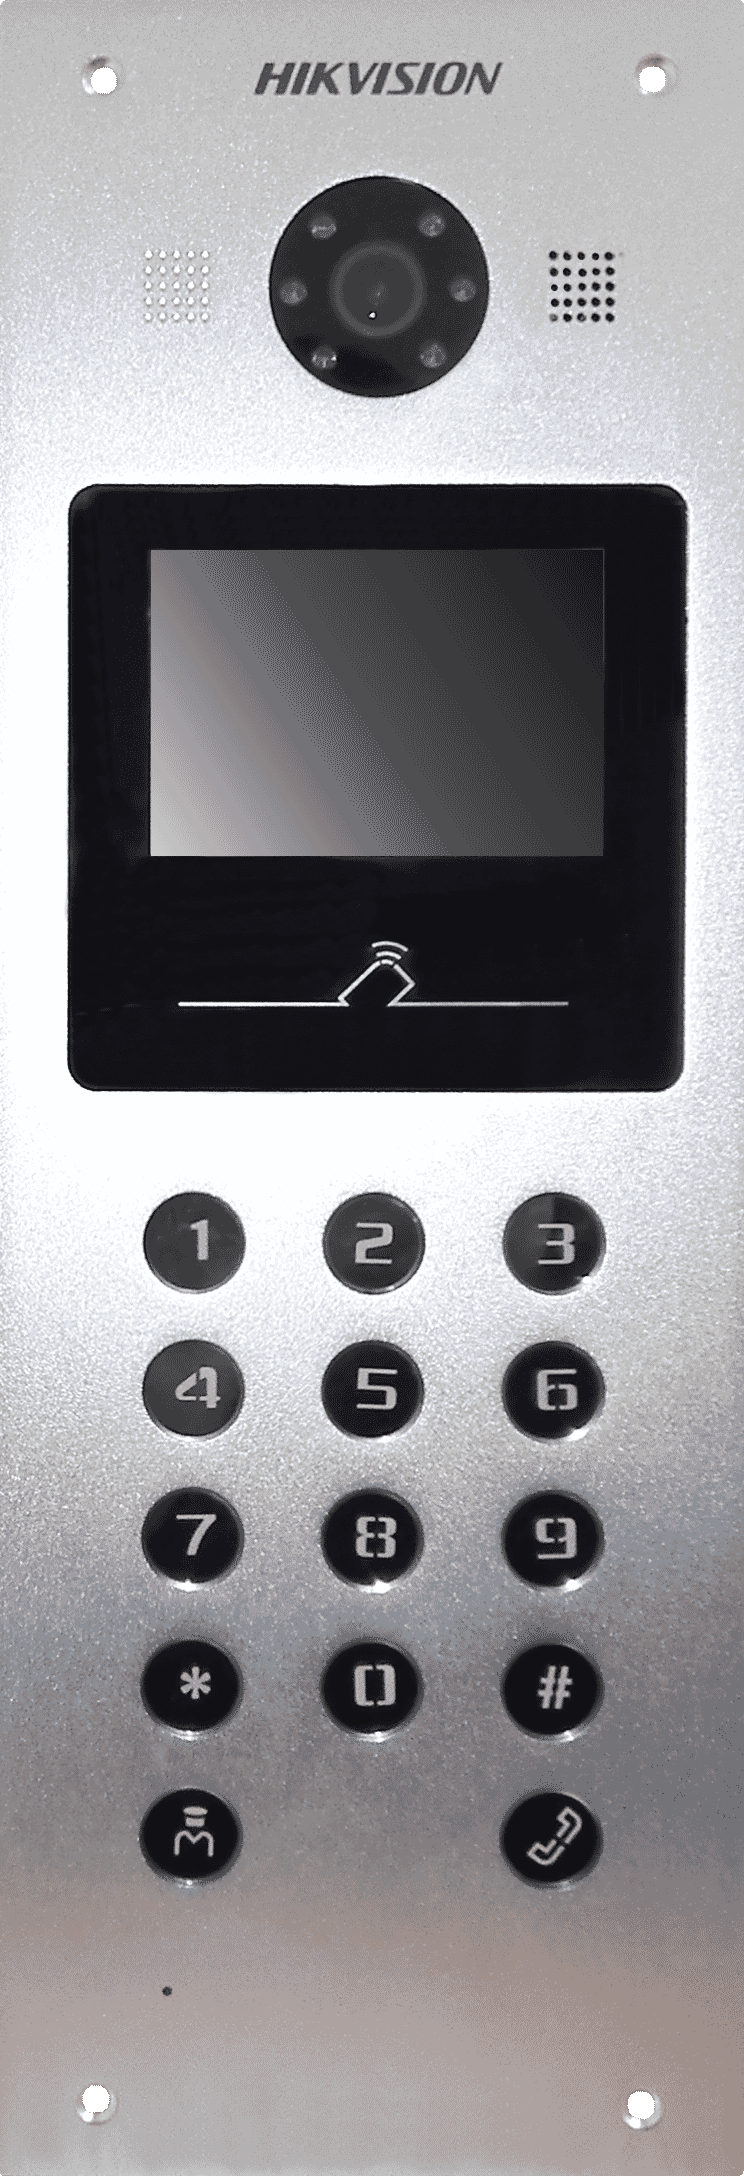 Hikvision DS-KD3002-VM Keypad Video Intercom Door Station | Connectec uk